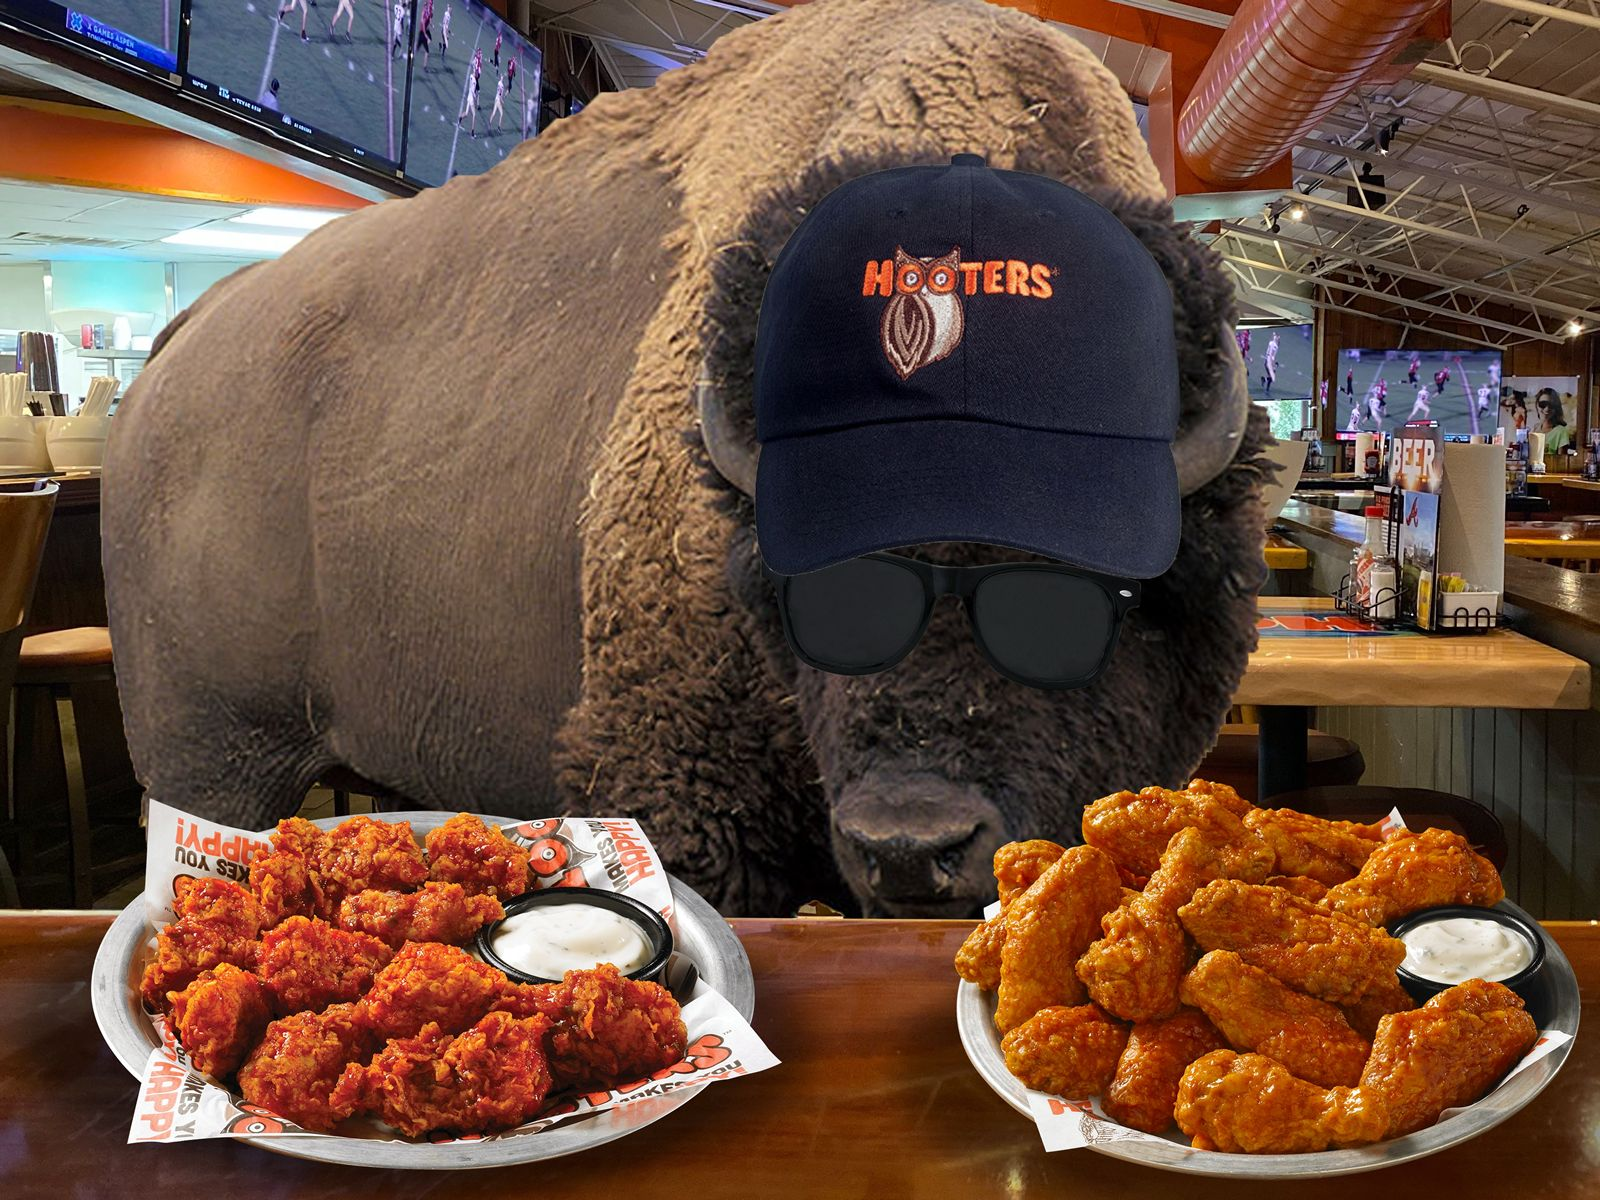 Hooters Ups the Ante on Buffalo Wild Wings 'Free Wings Offer' if the Big Game Goes Into OT